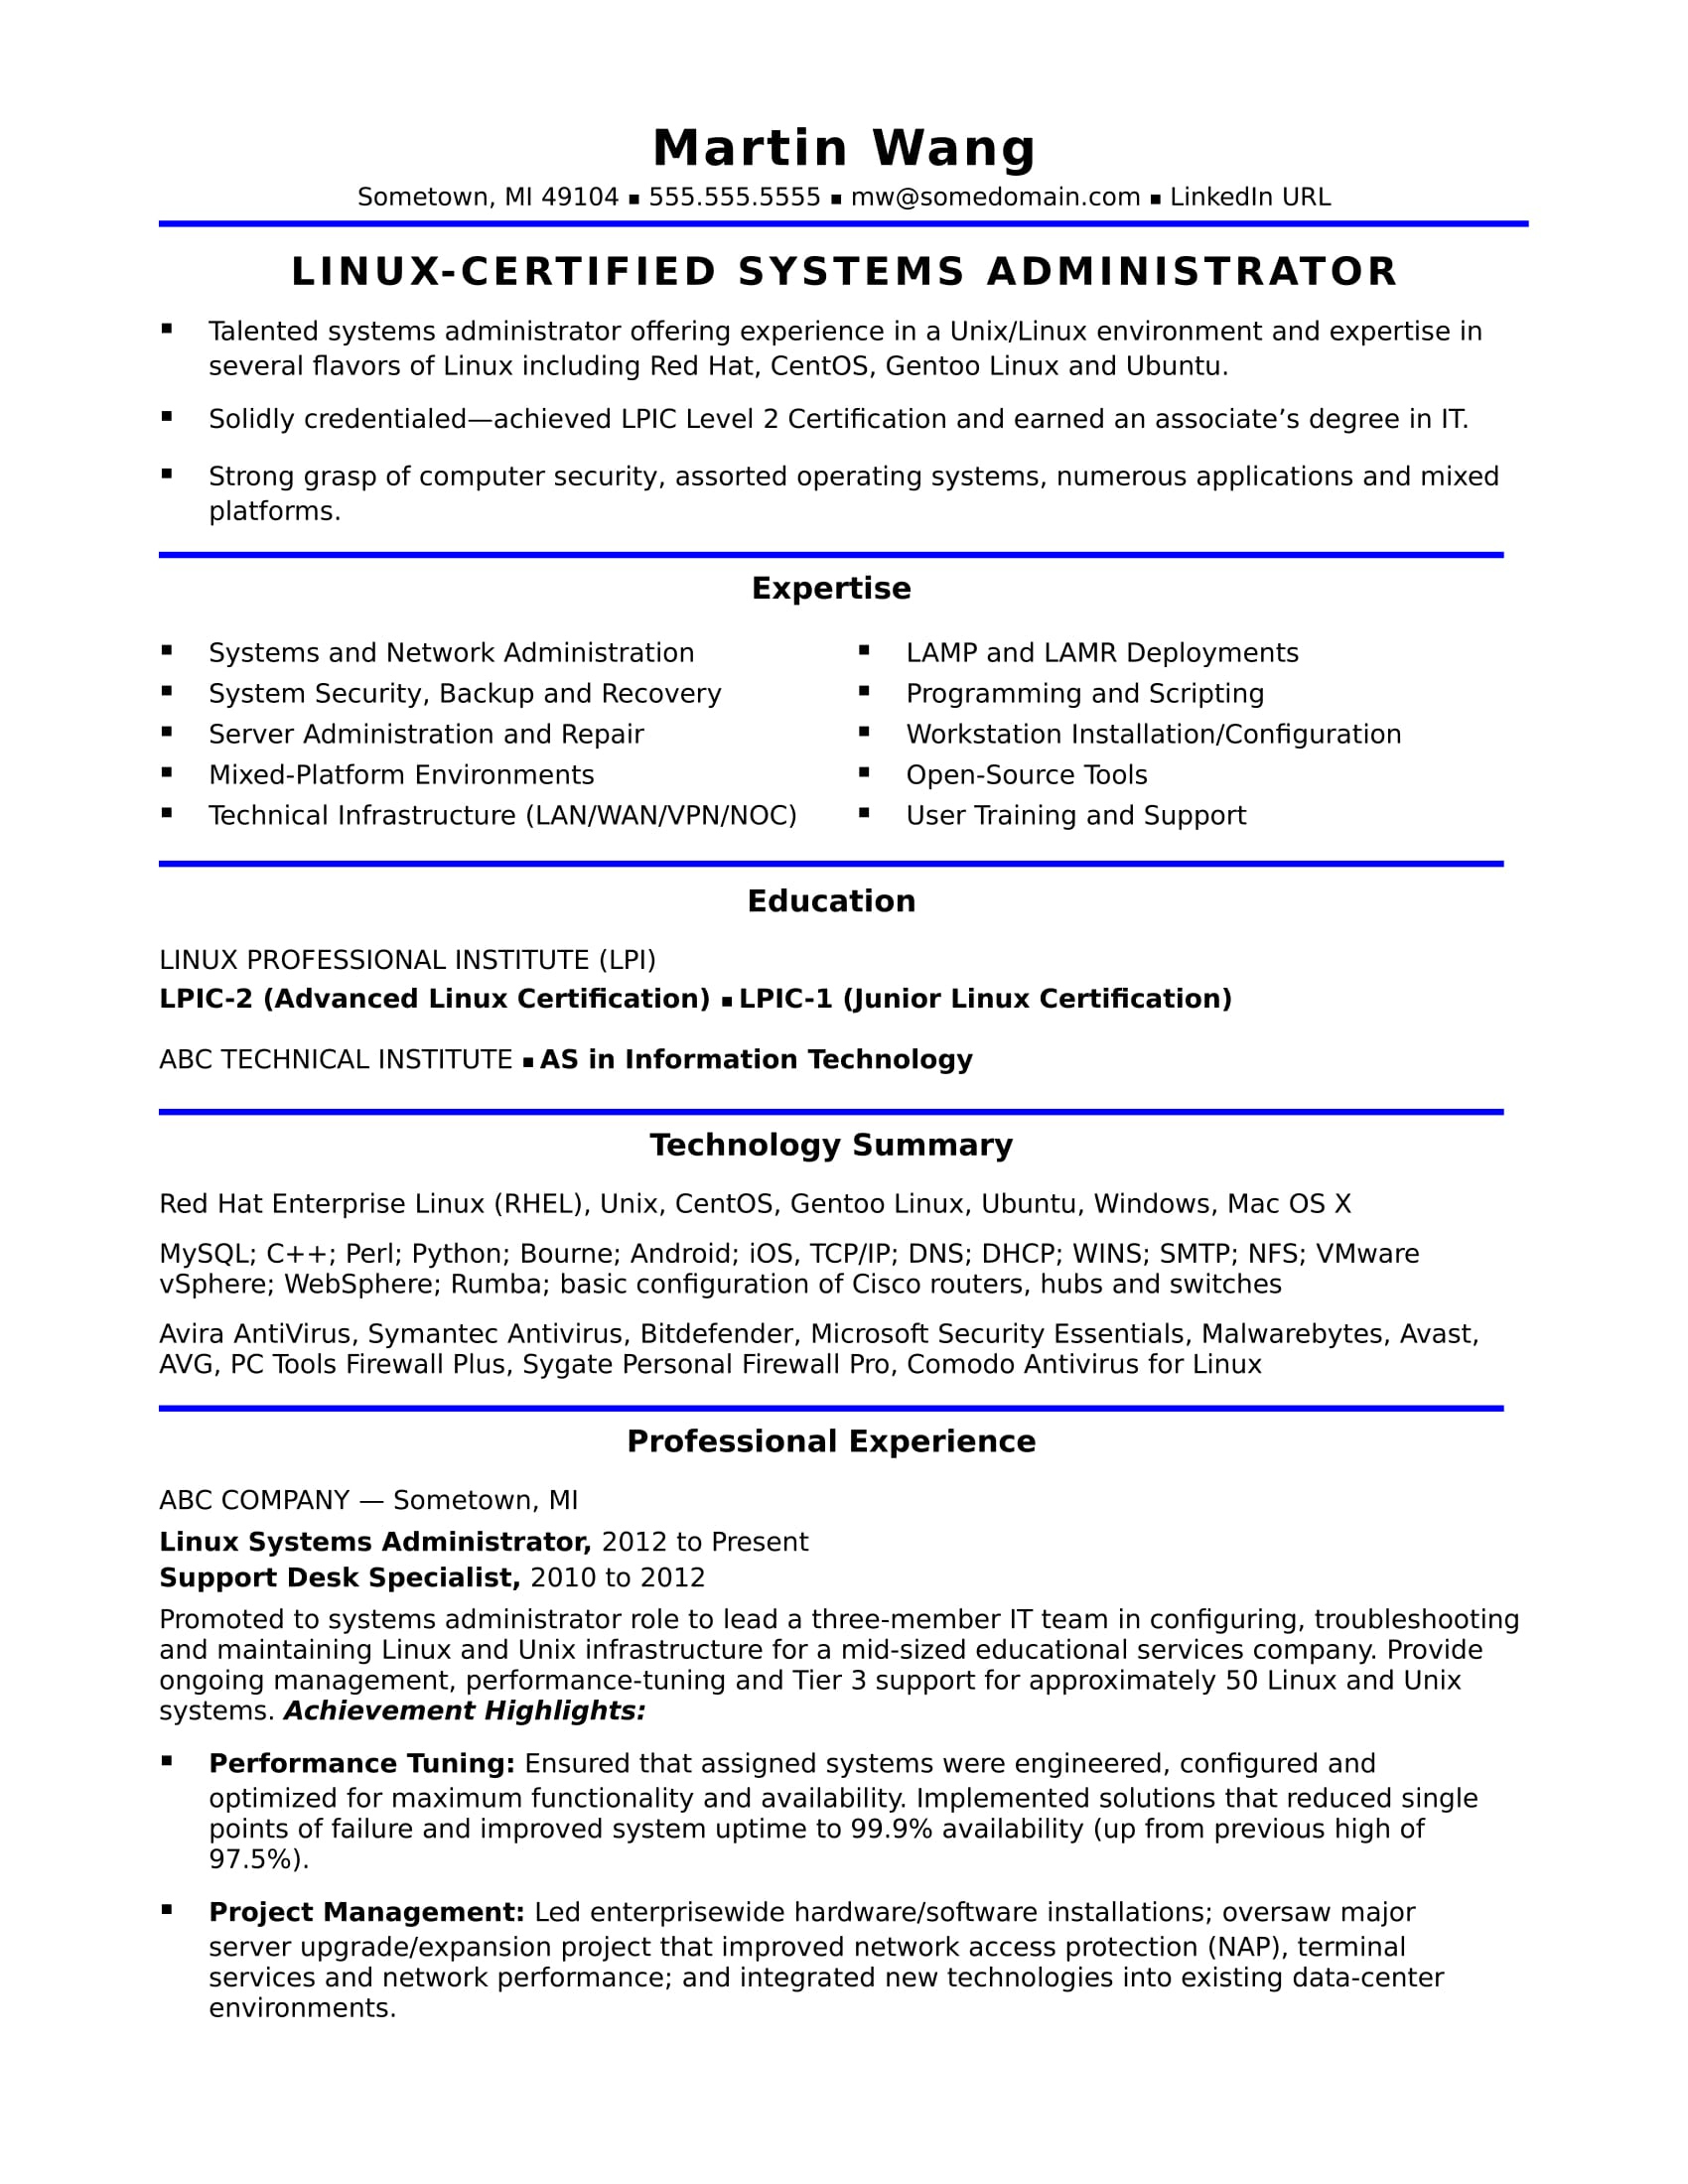 Sample Resume for a Midlevel Systems Administrator | Monster com